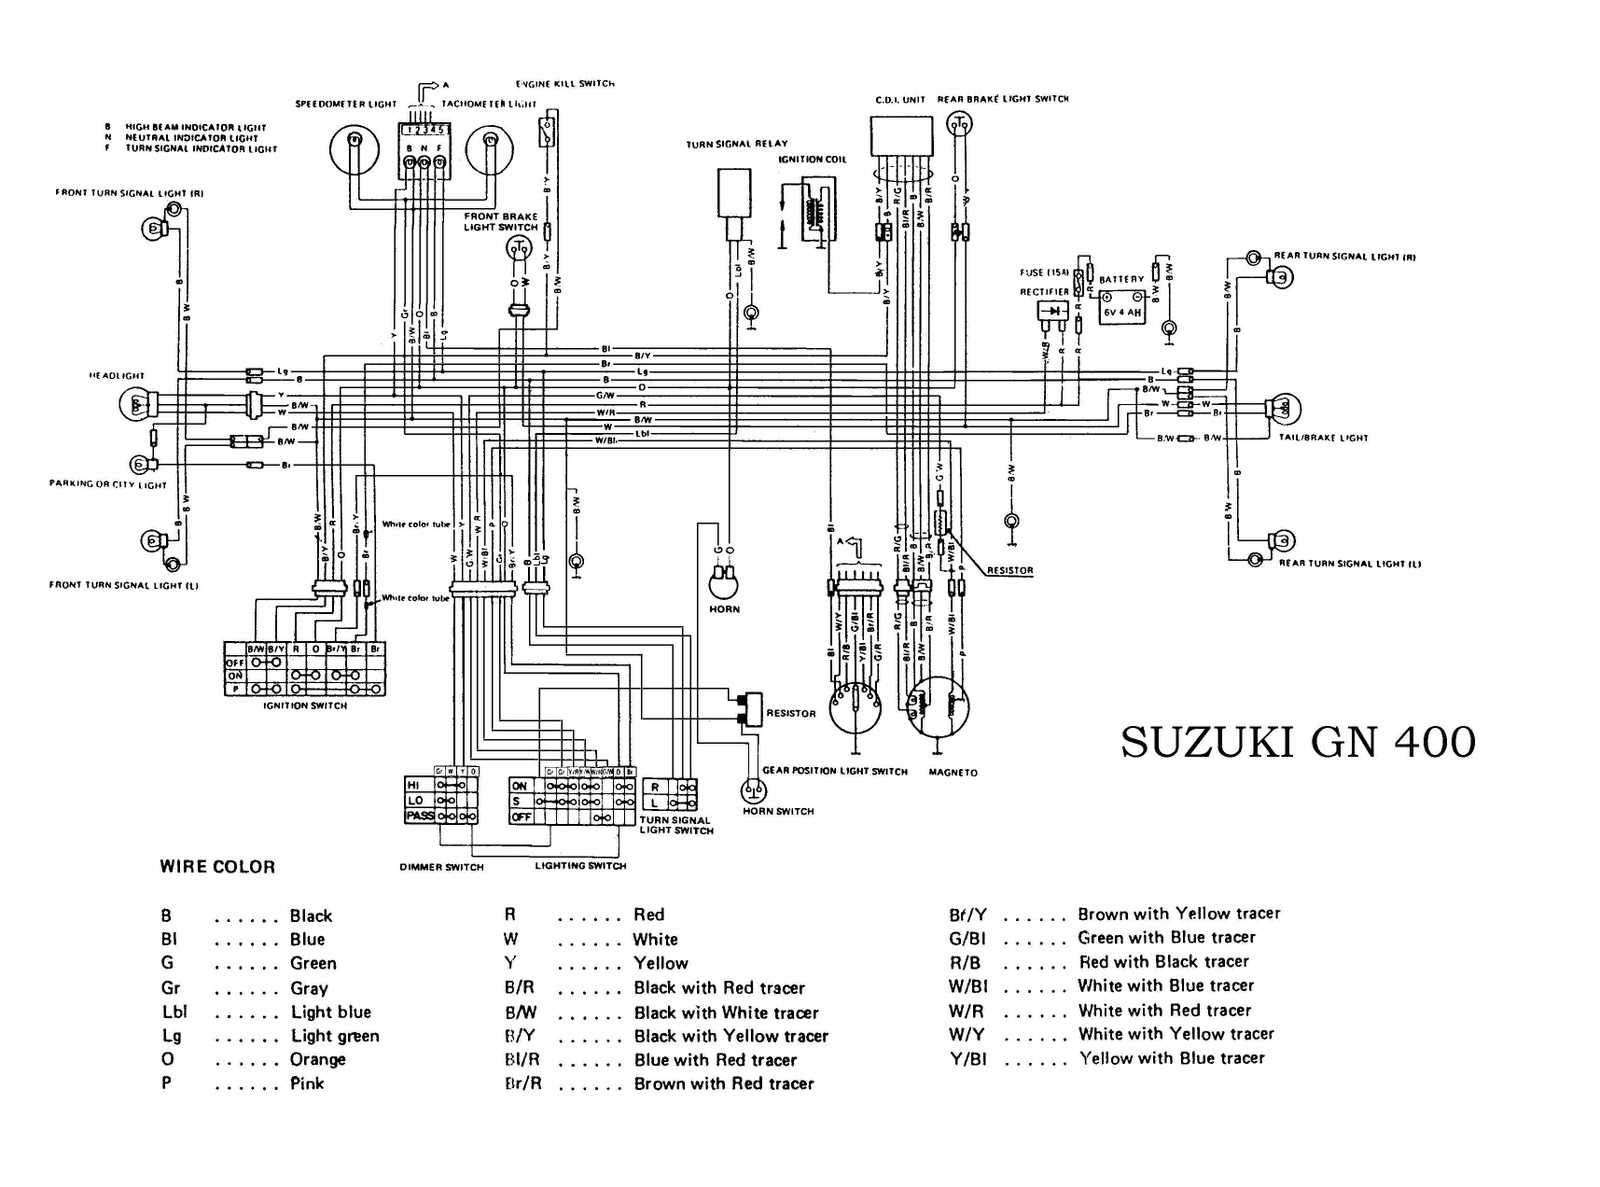 Suzuki+GN400+Electrical+Wiring+Diagram e67 wiring diagram smart car diagrams \u2022 wiring diagrams j squared co suzuki f6a wiring diagram at virtualis.co